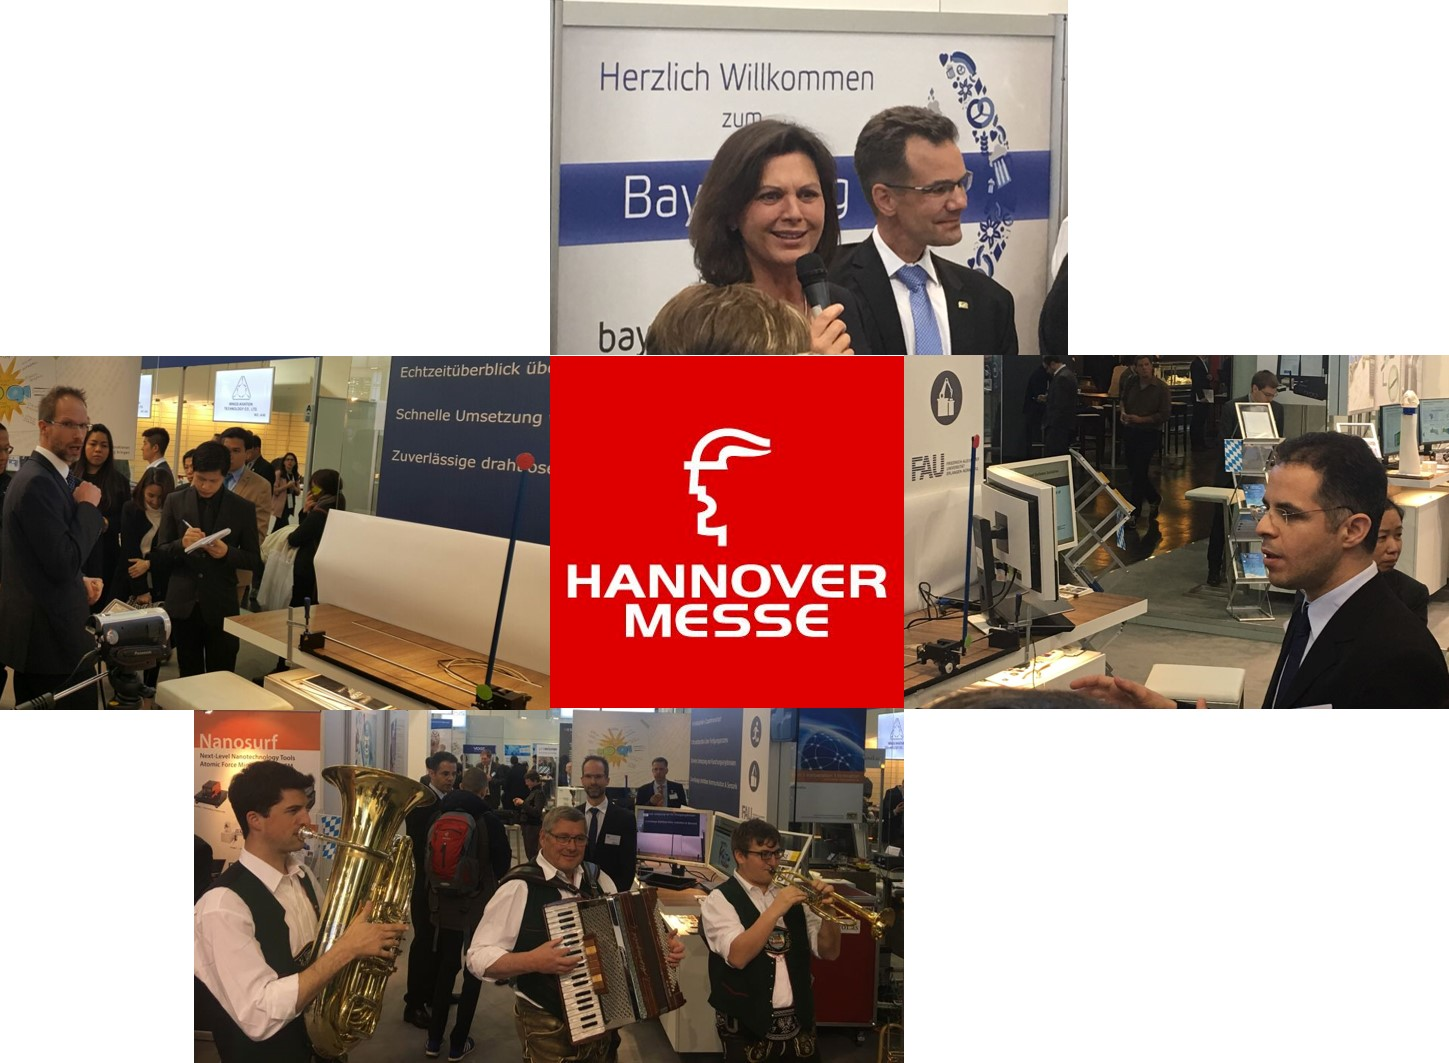 Invasive Computing at the Hannover Messe 2017